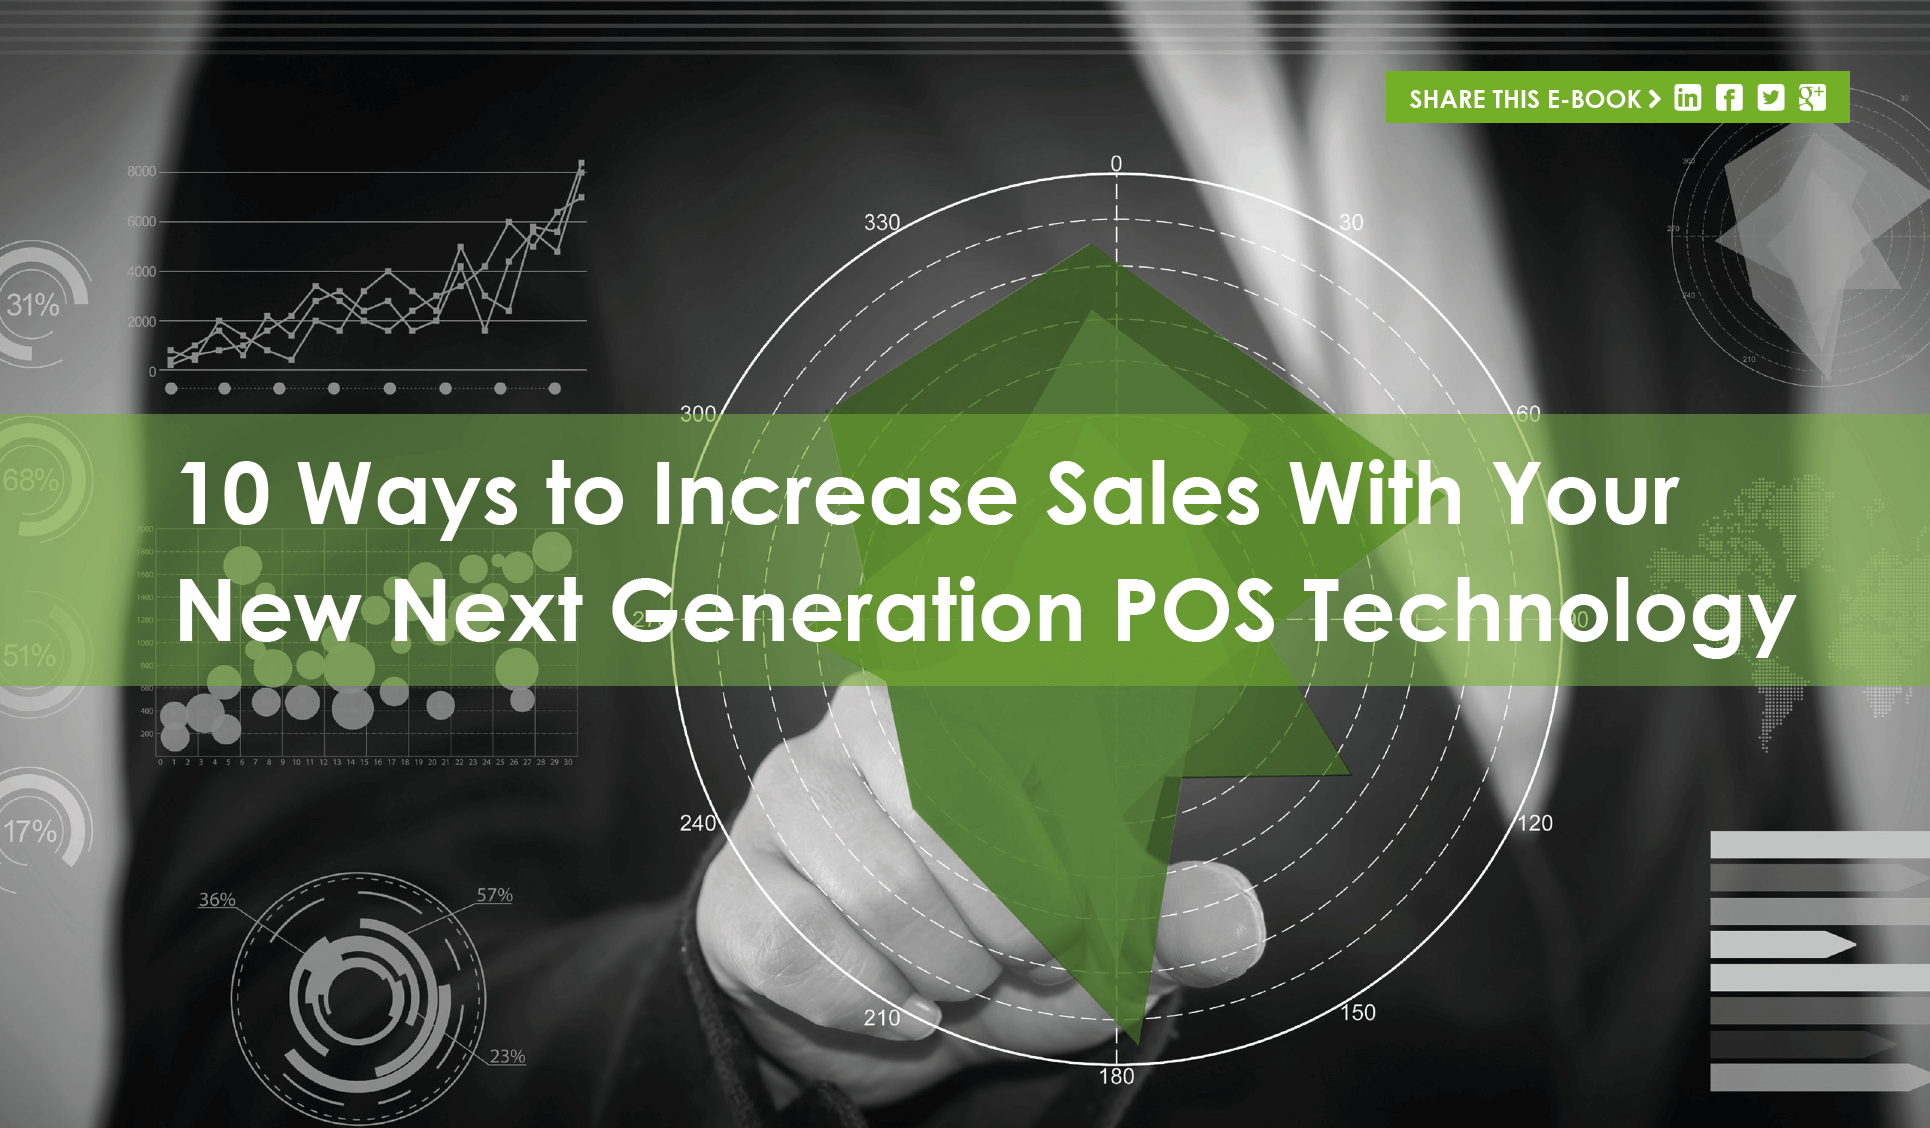 eBook_10 ways to increase sales with next generation POS_EN.png